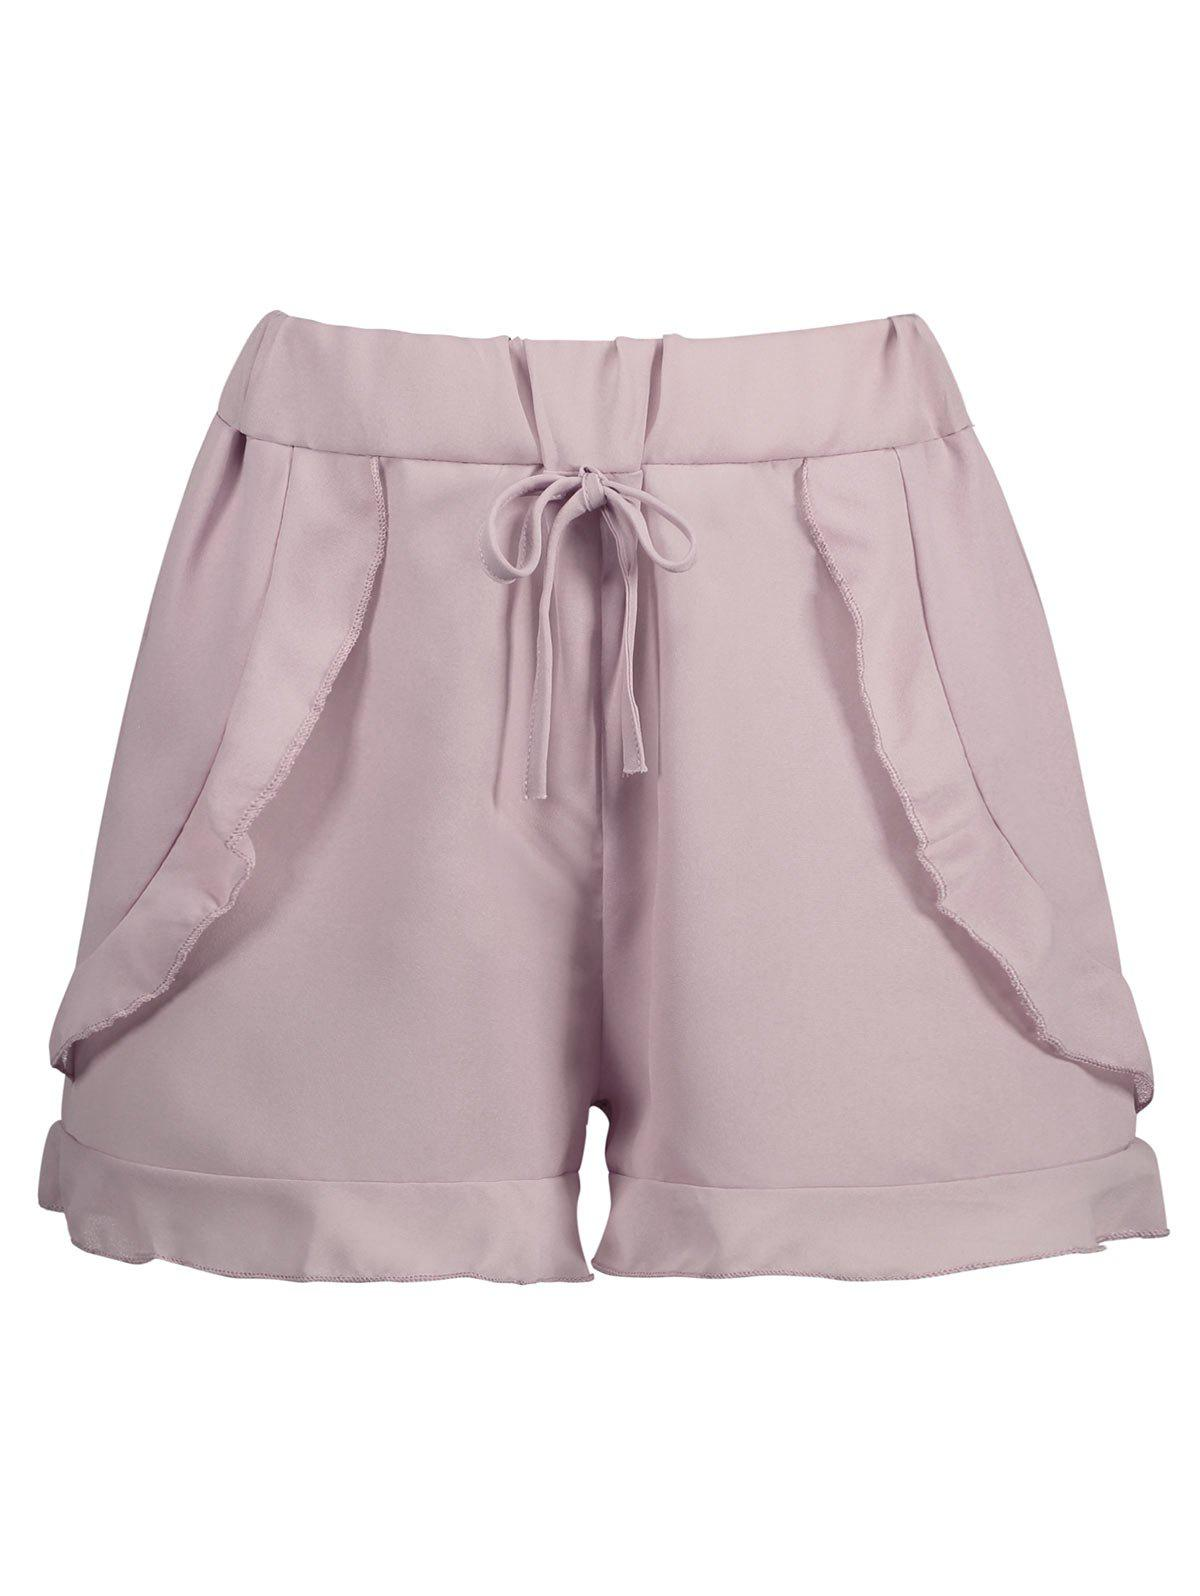 Hot Elastic Waist Chiffon Ruffled Shorts